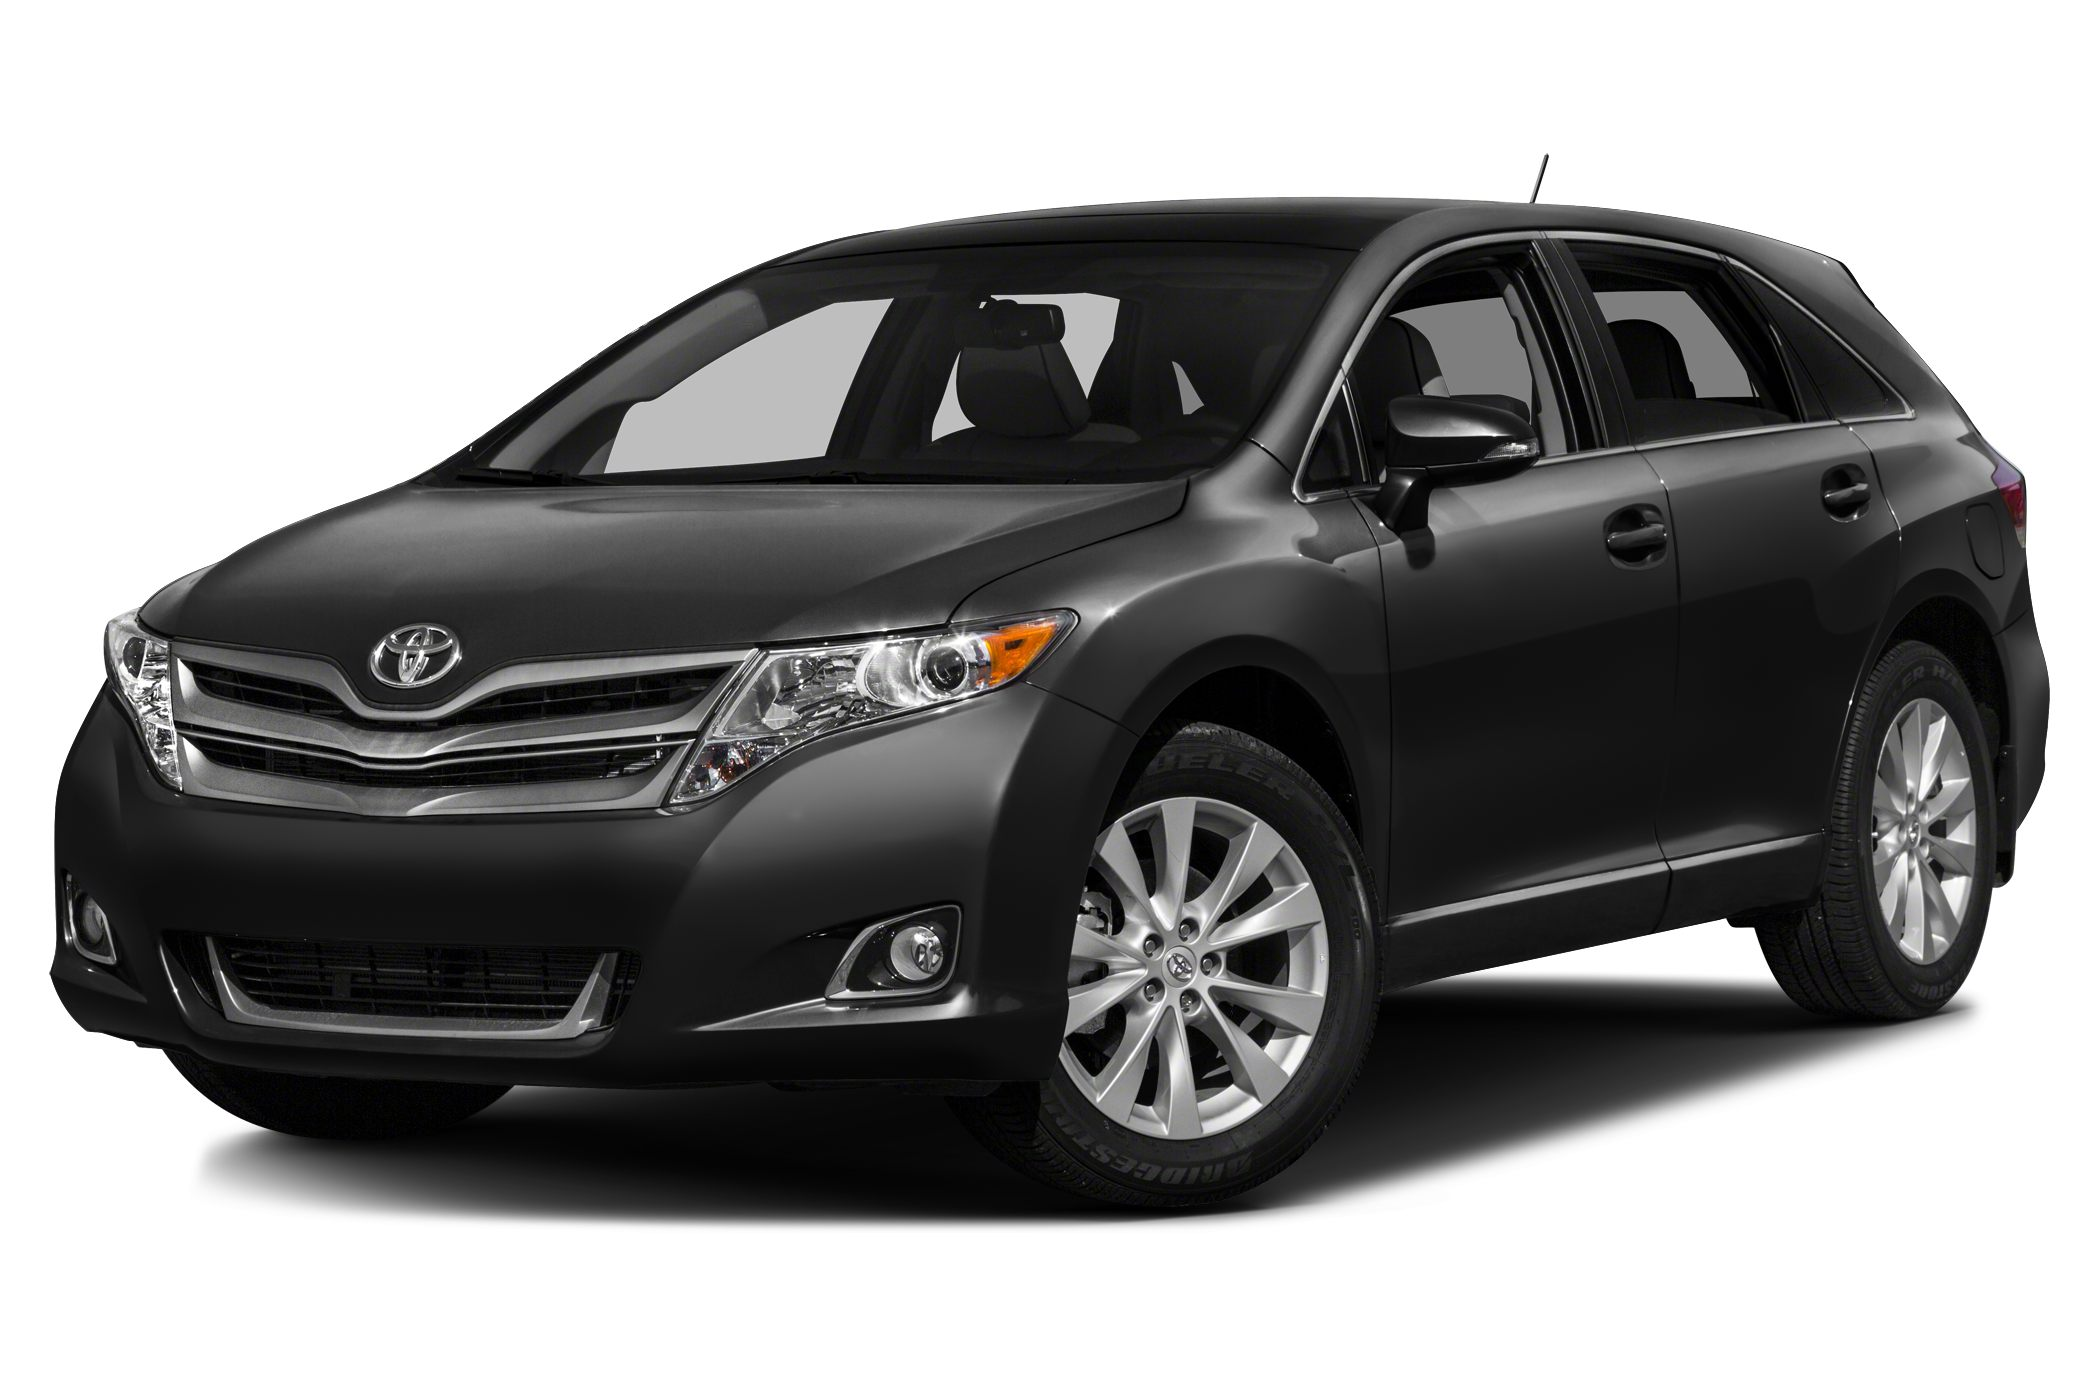 2013 Toyota Venza XLE CARFAX 1-Owner LOW MILES - 45226 FUEL EFFICIENT 25 MPG Hwy18 MPG City